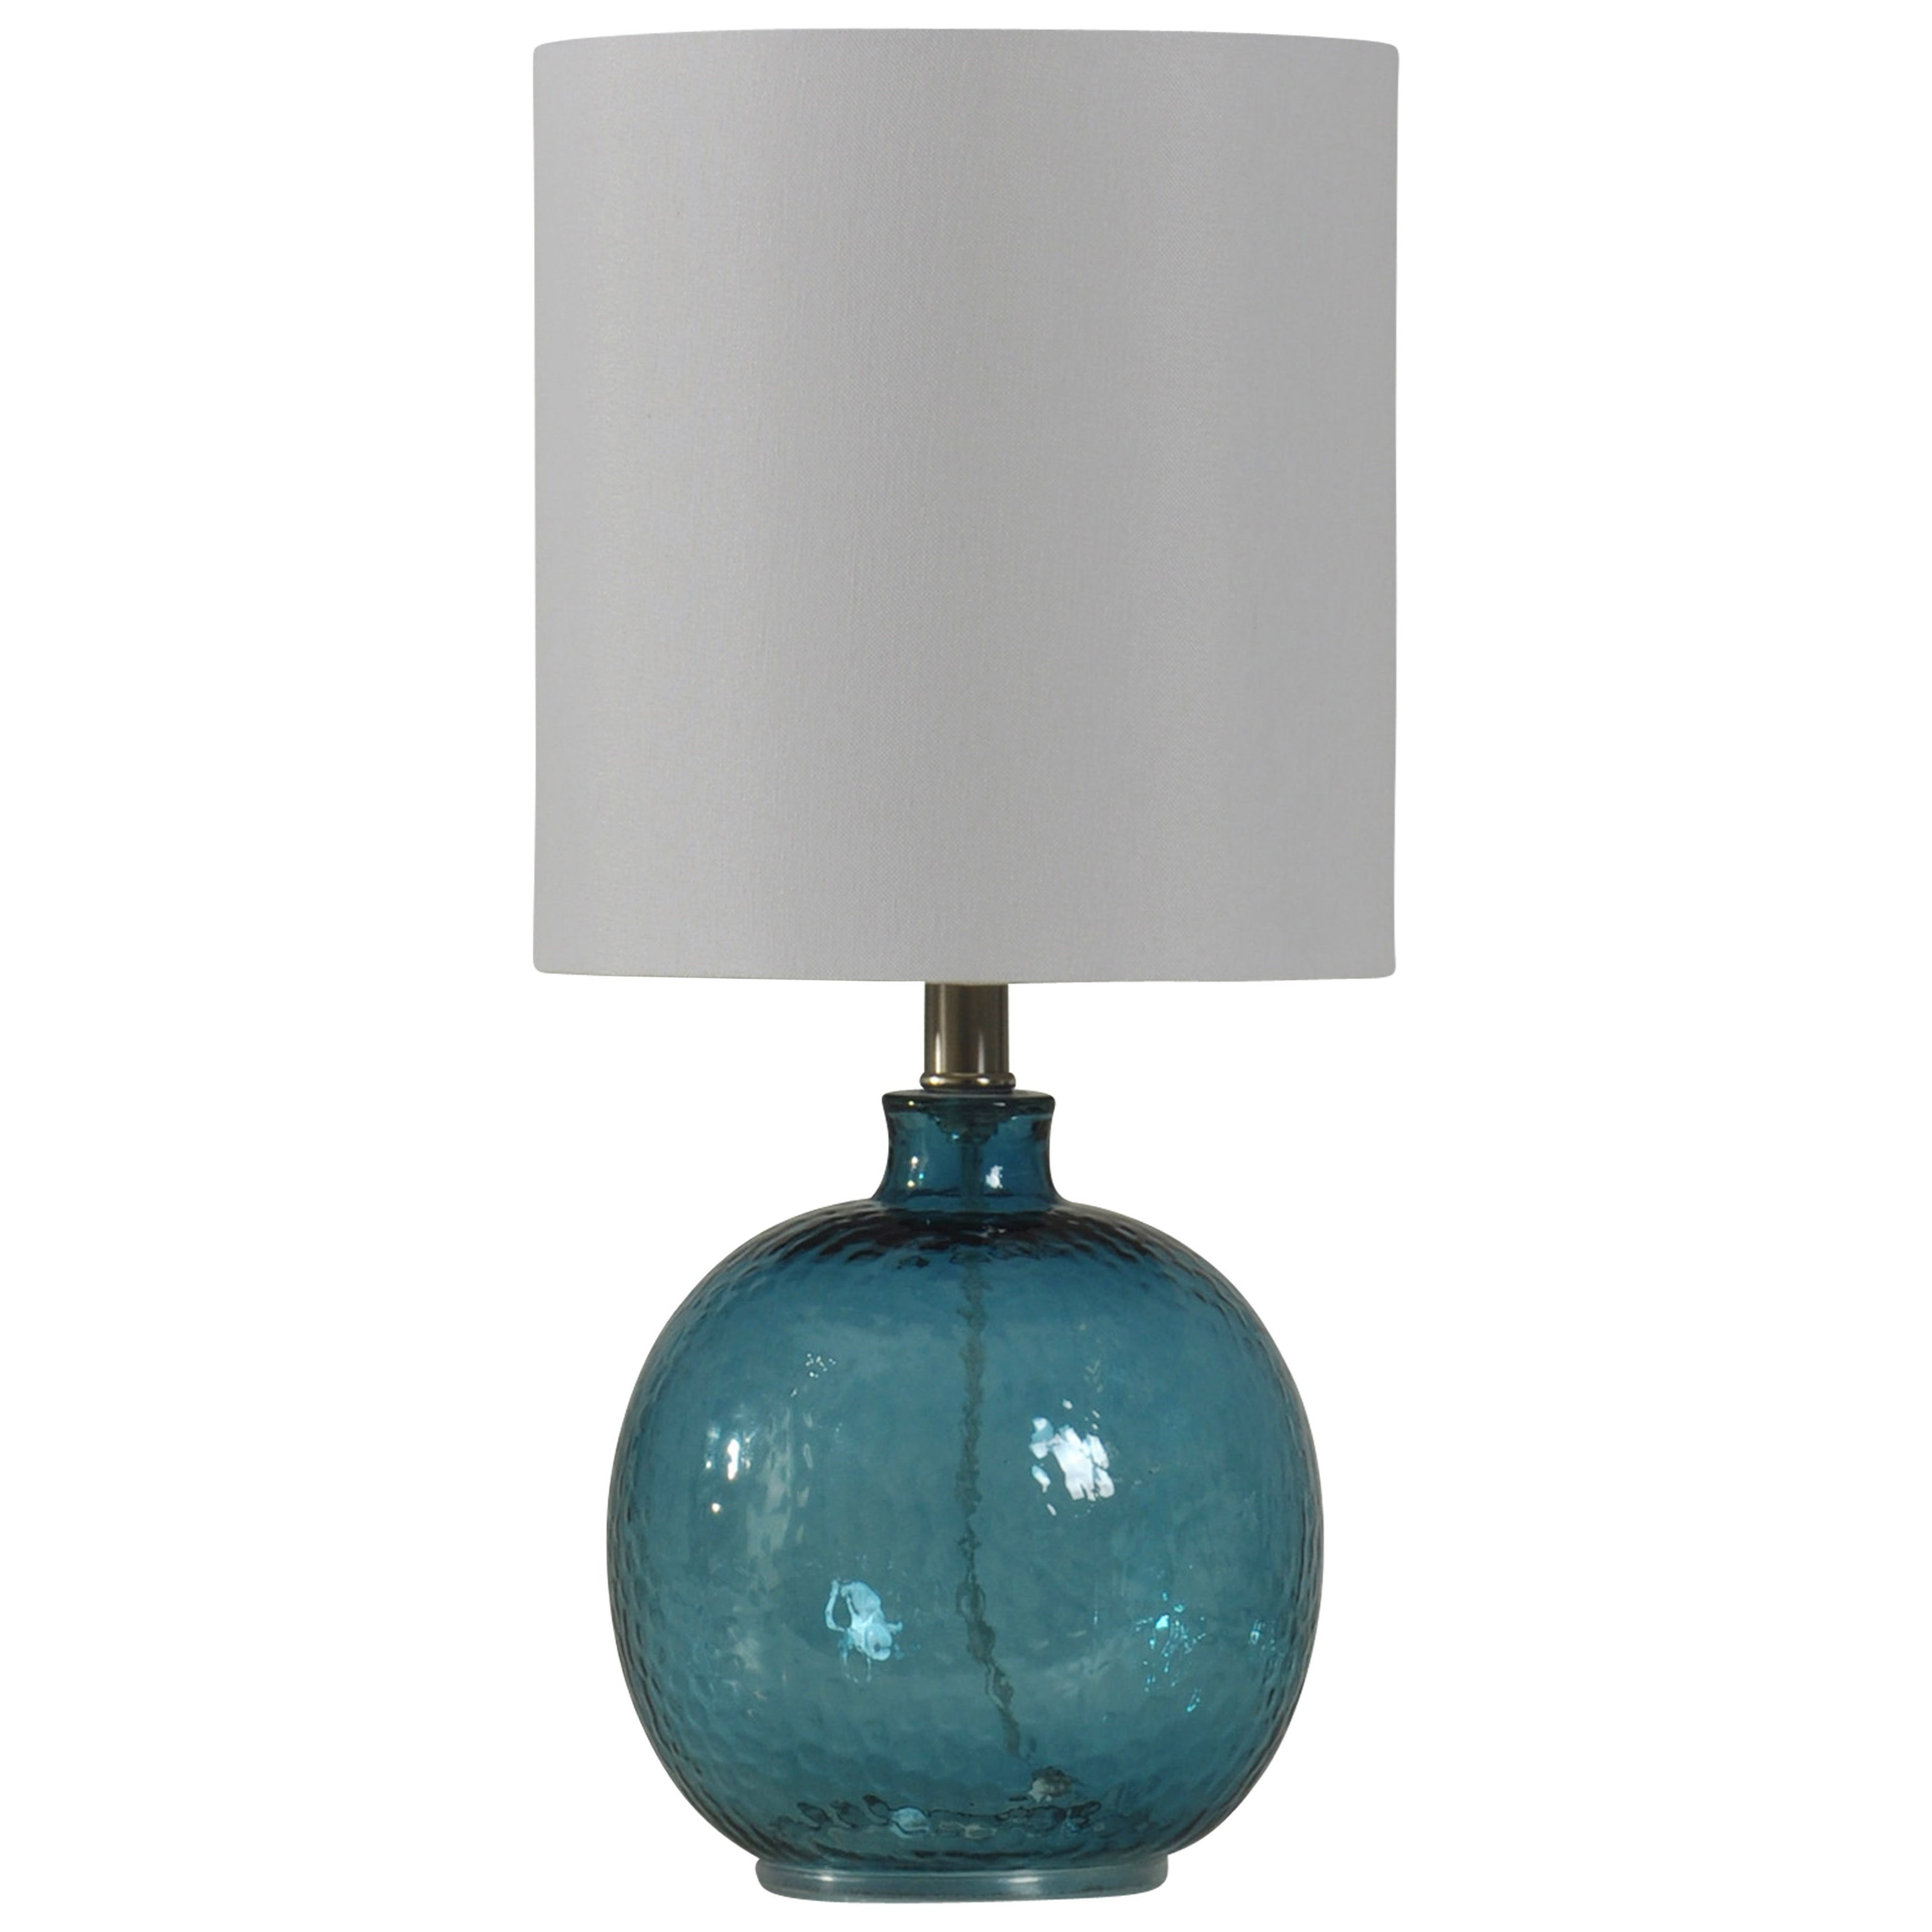 Lamps Mini Spanish Glass Ball Lamp by StyleCraft at Alison Craig Home Furnishings